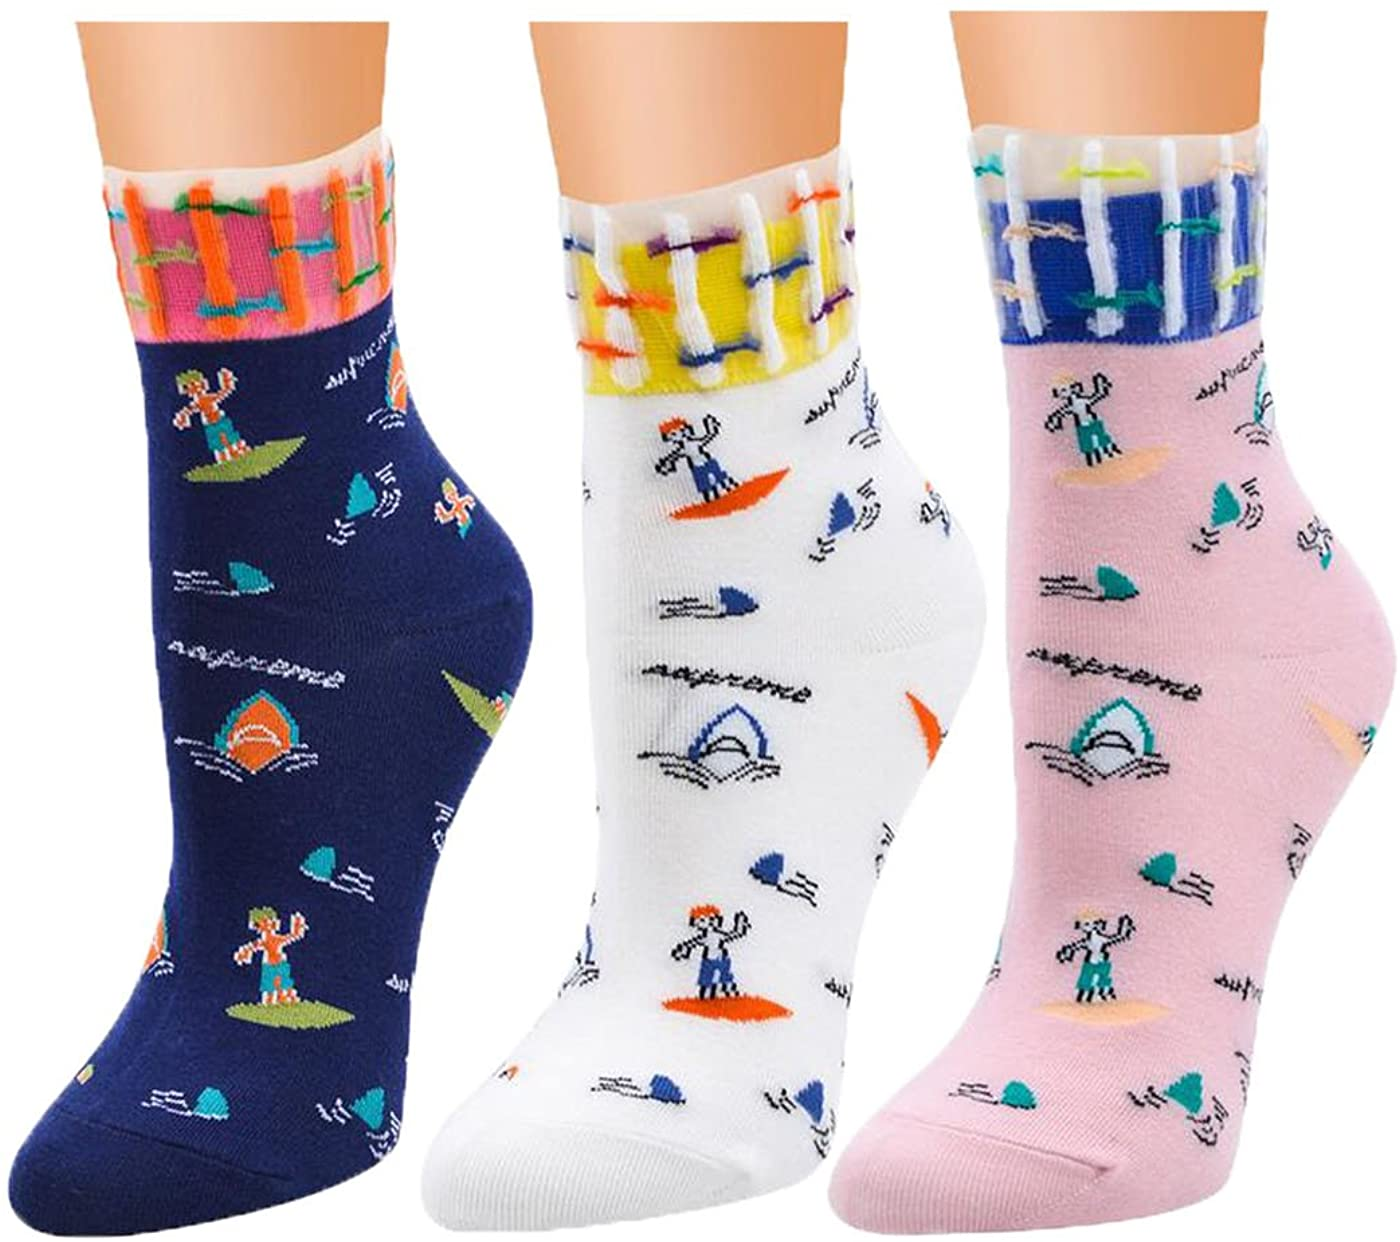 Underwater World Patterned Cartoon Stockings Lace-trim Women Girls Cotton Funny Cute Socks 3-8 Pack